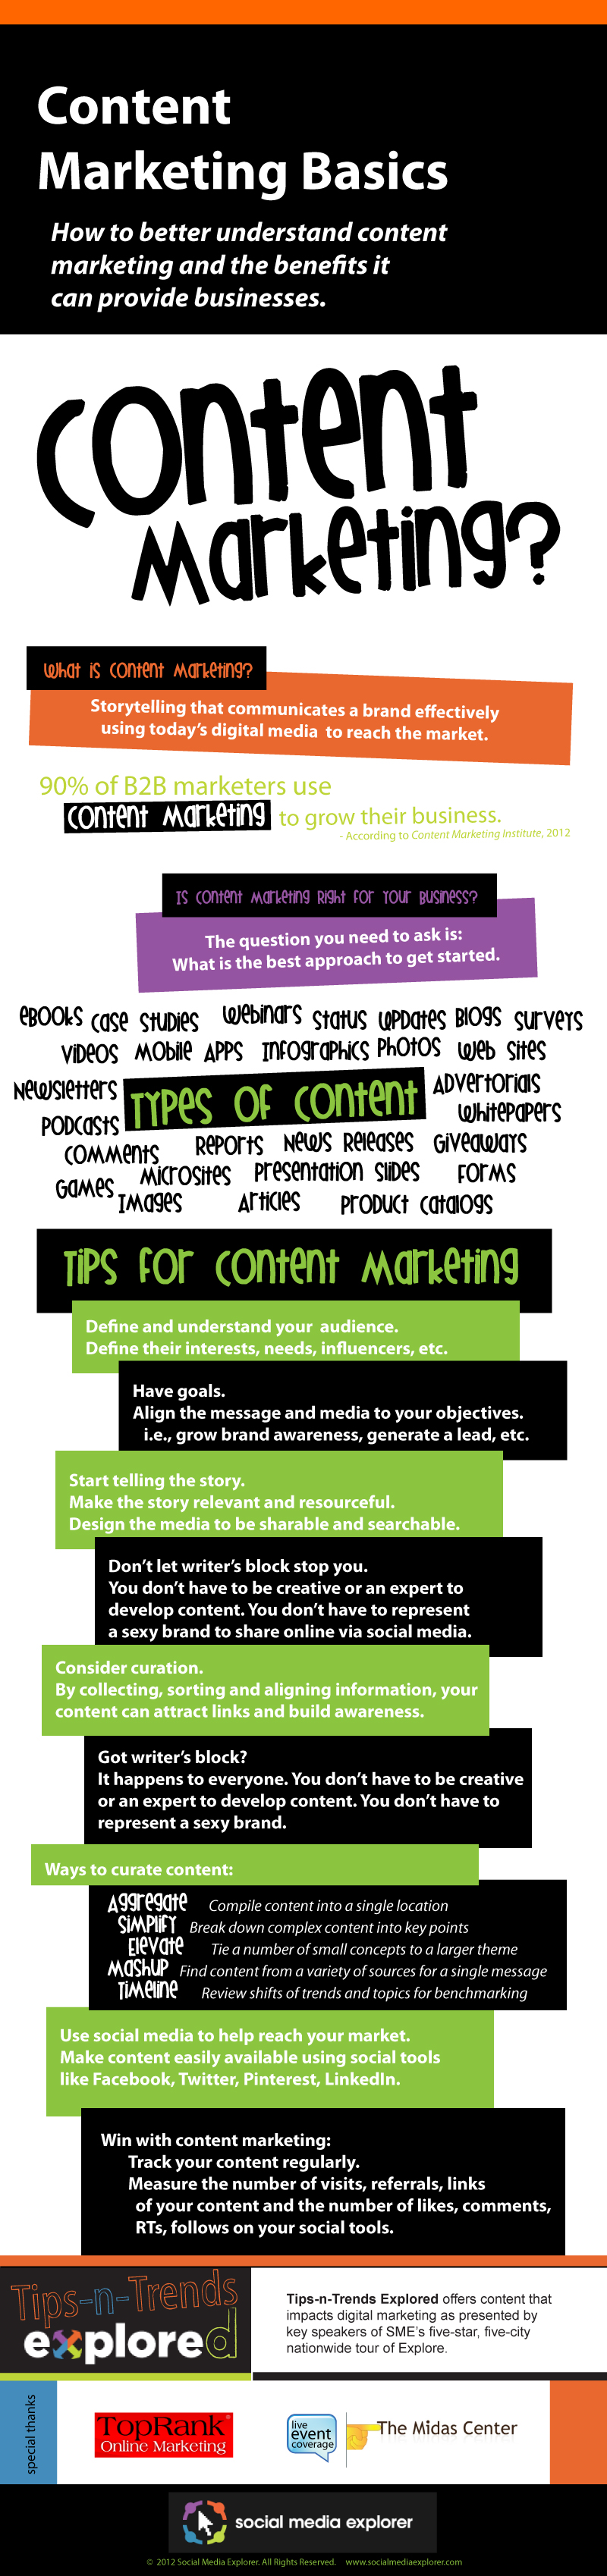 Guide to Content Marketing